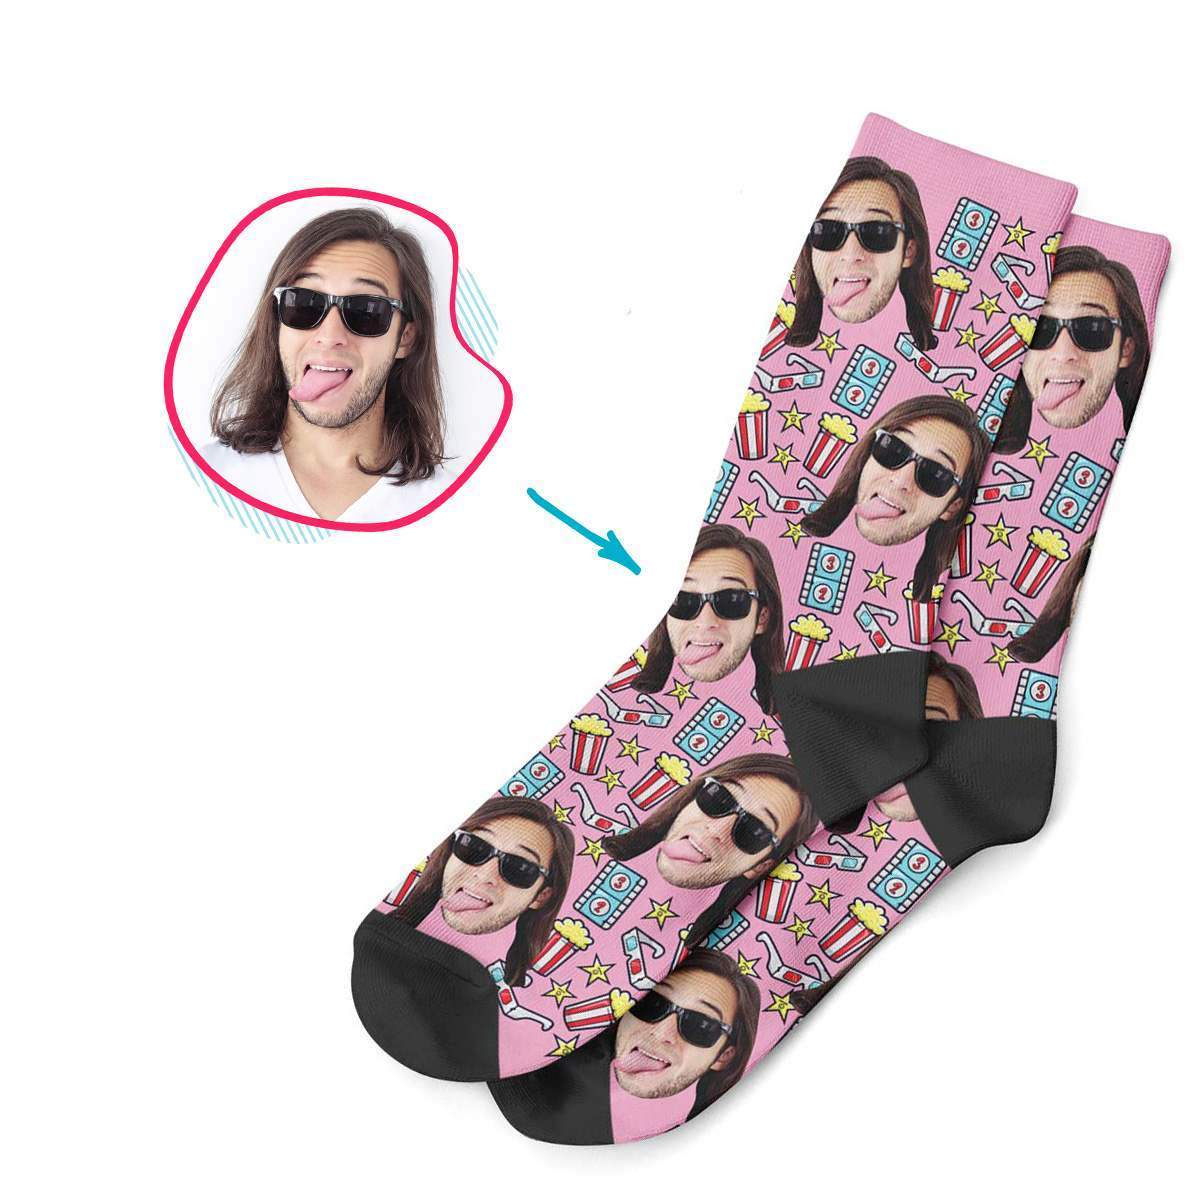 pink Movie socks personalized with photo of face printed on them